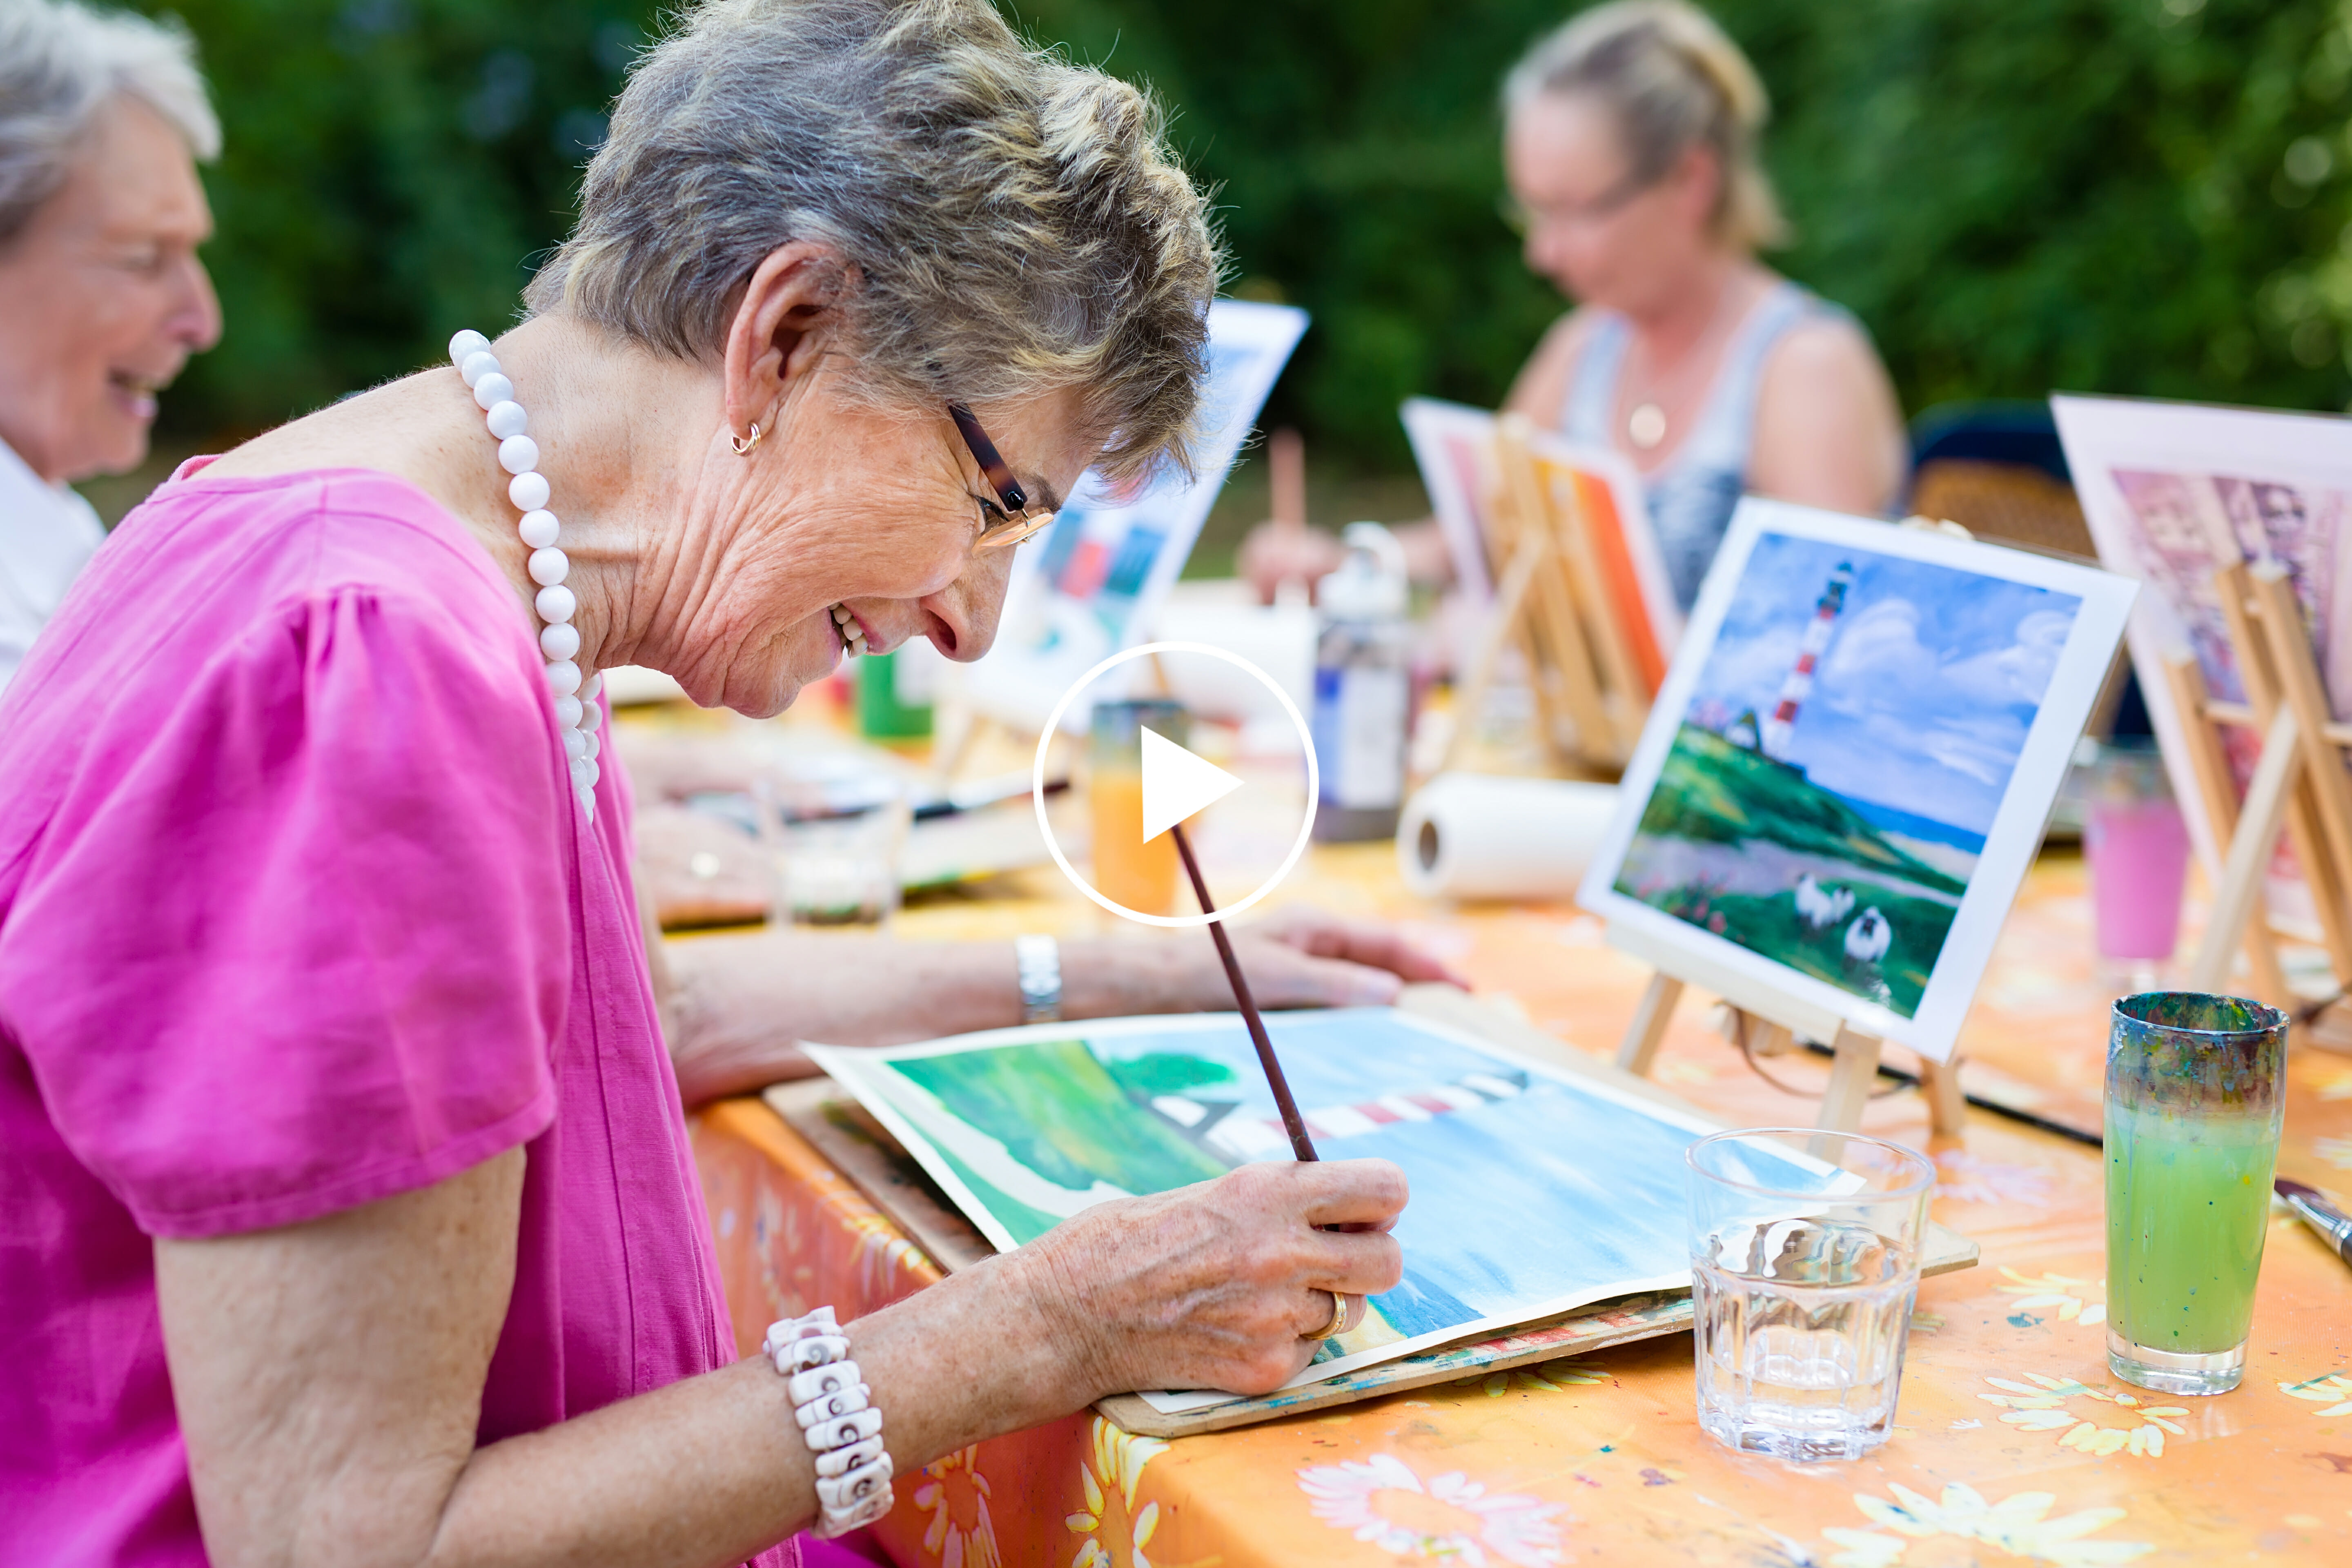 Senior lady assisted living resident participating in art classes innovative social programs world-renown entertainment in retirement home